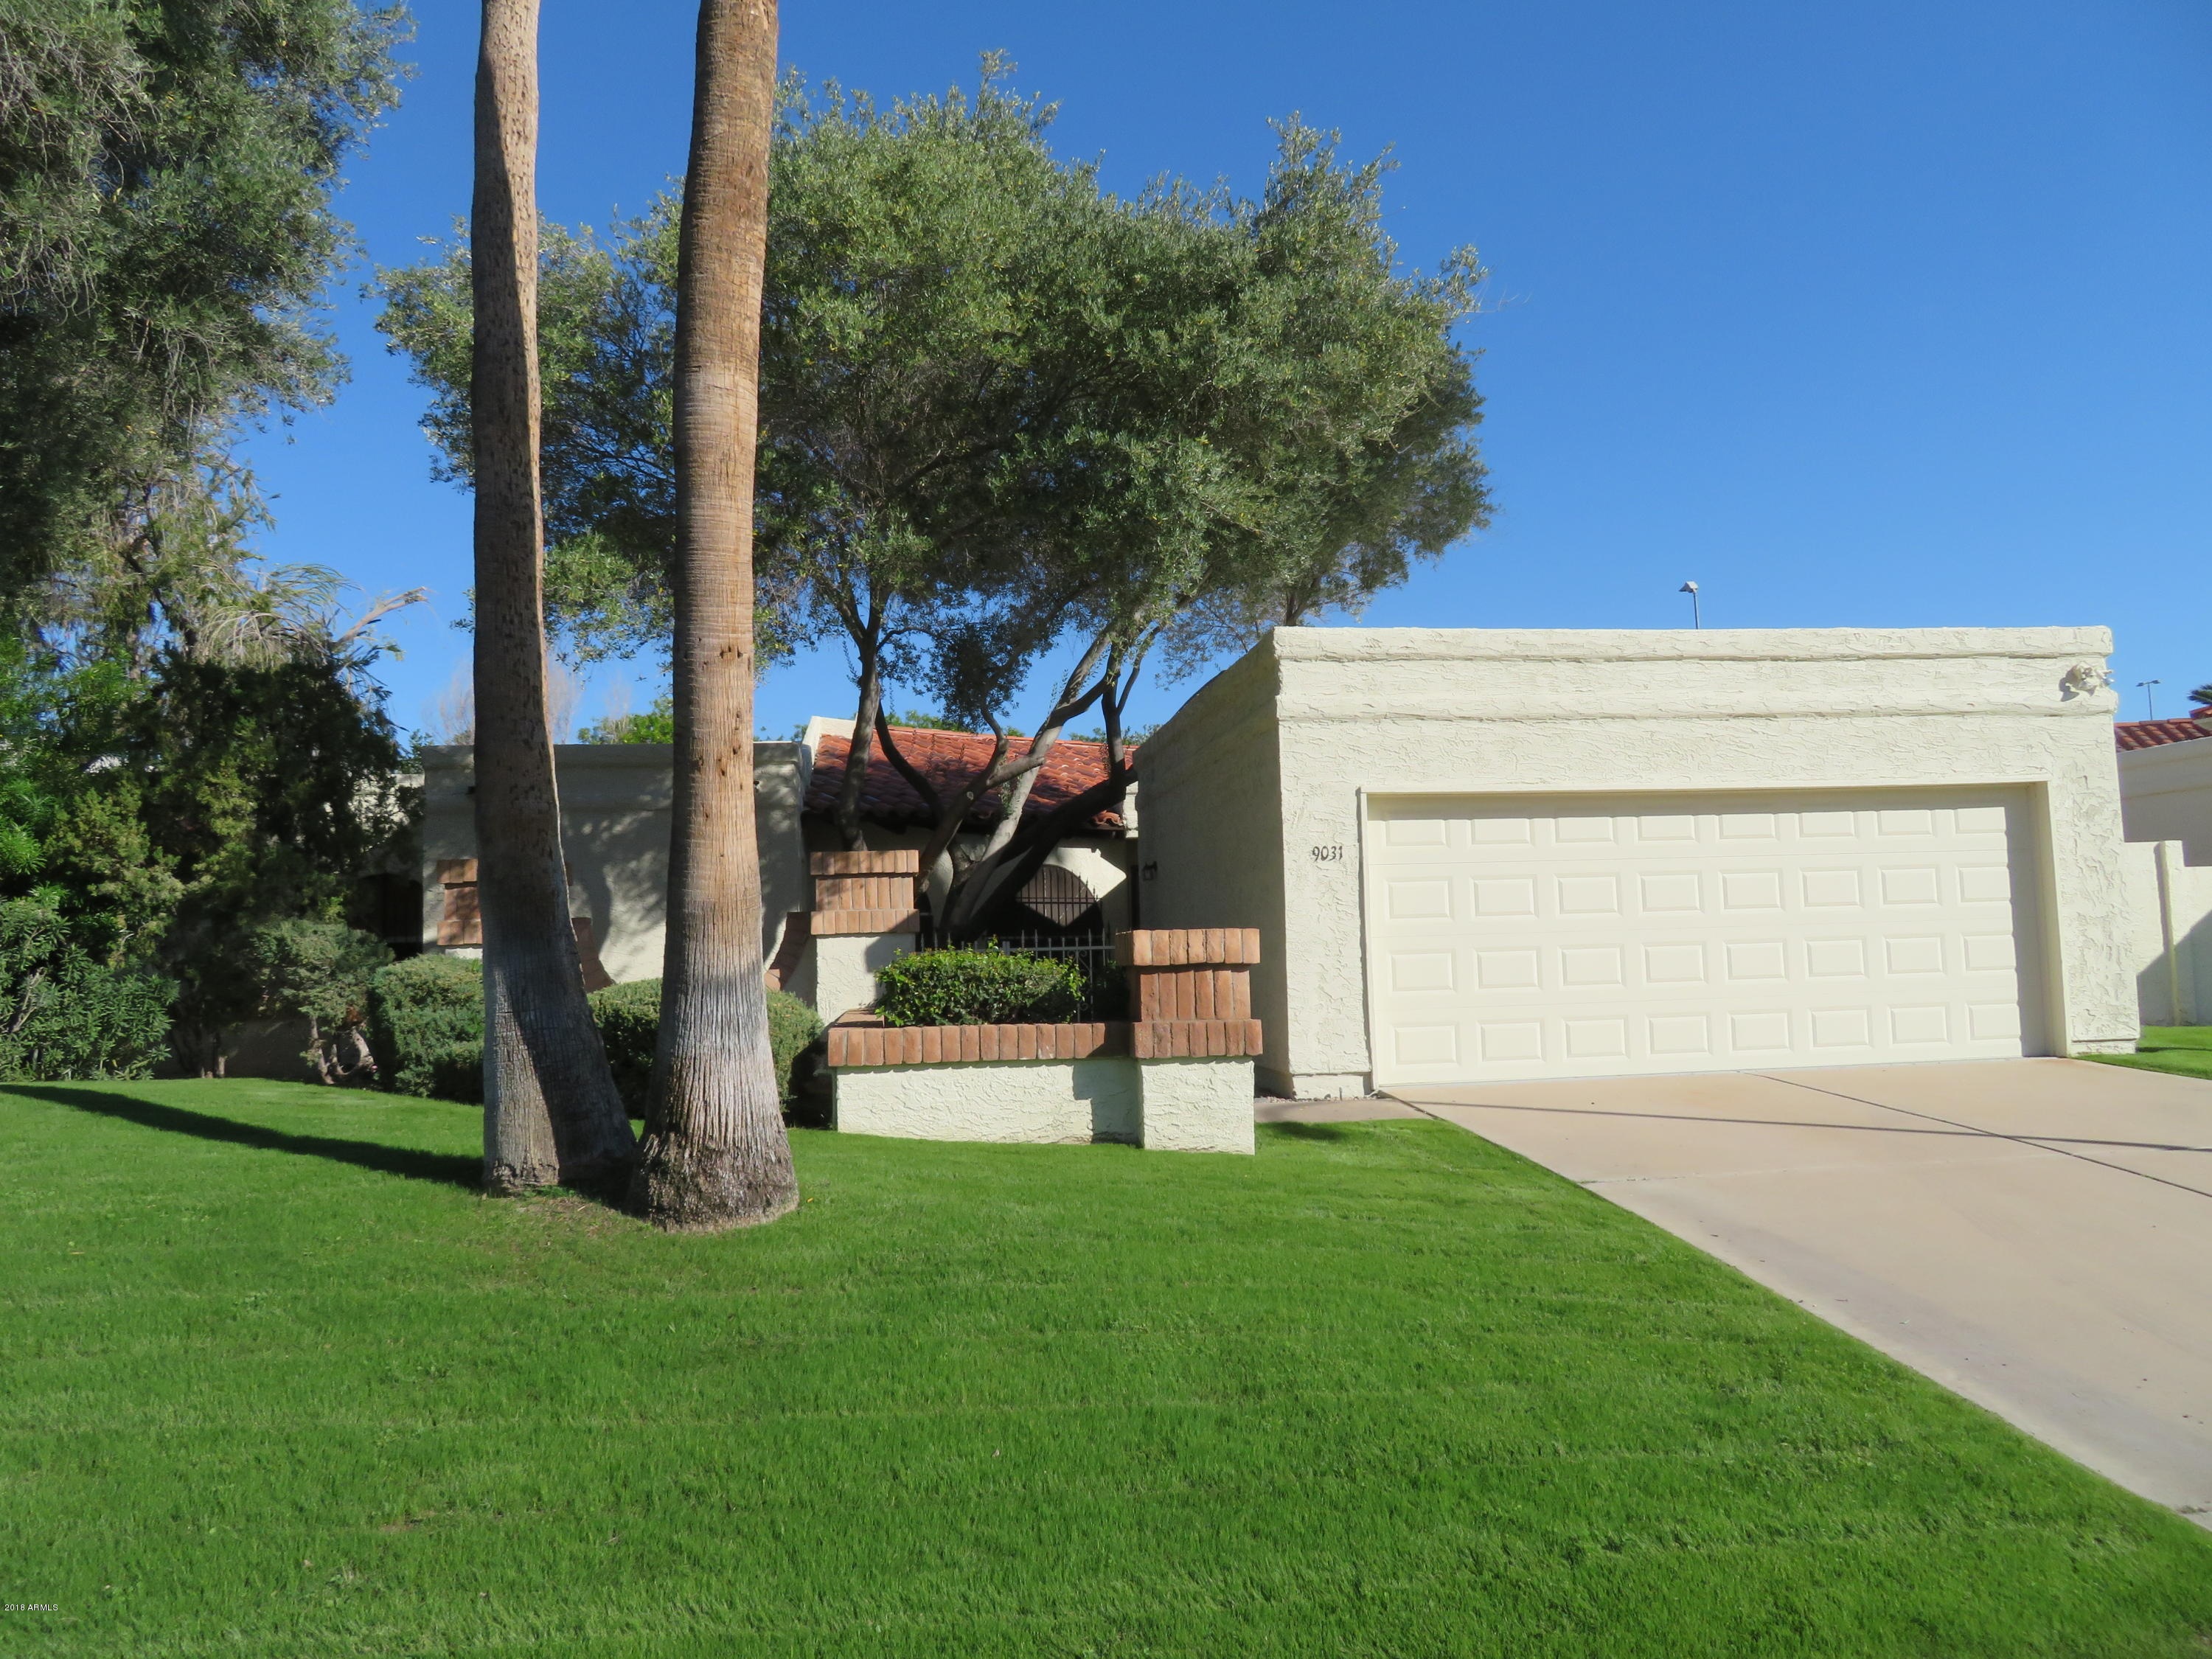 Photo of 9031 N 87TH Way, Scottsdale, AZ 85258